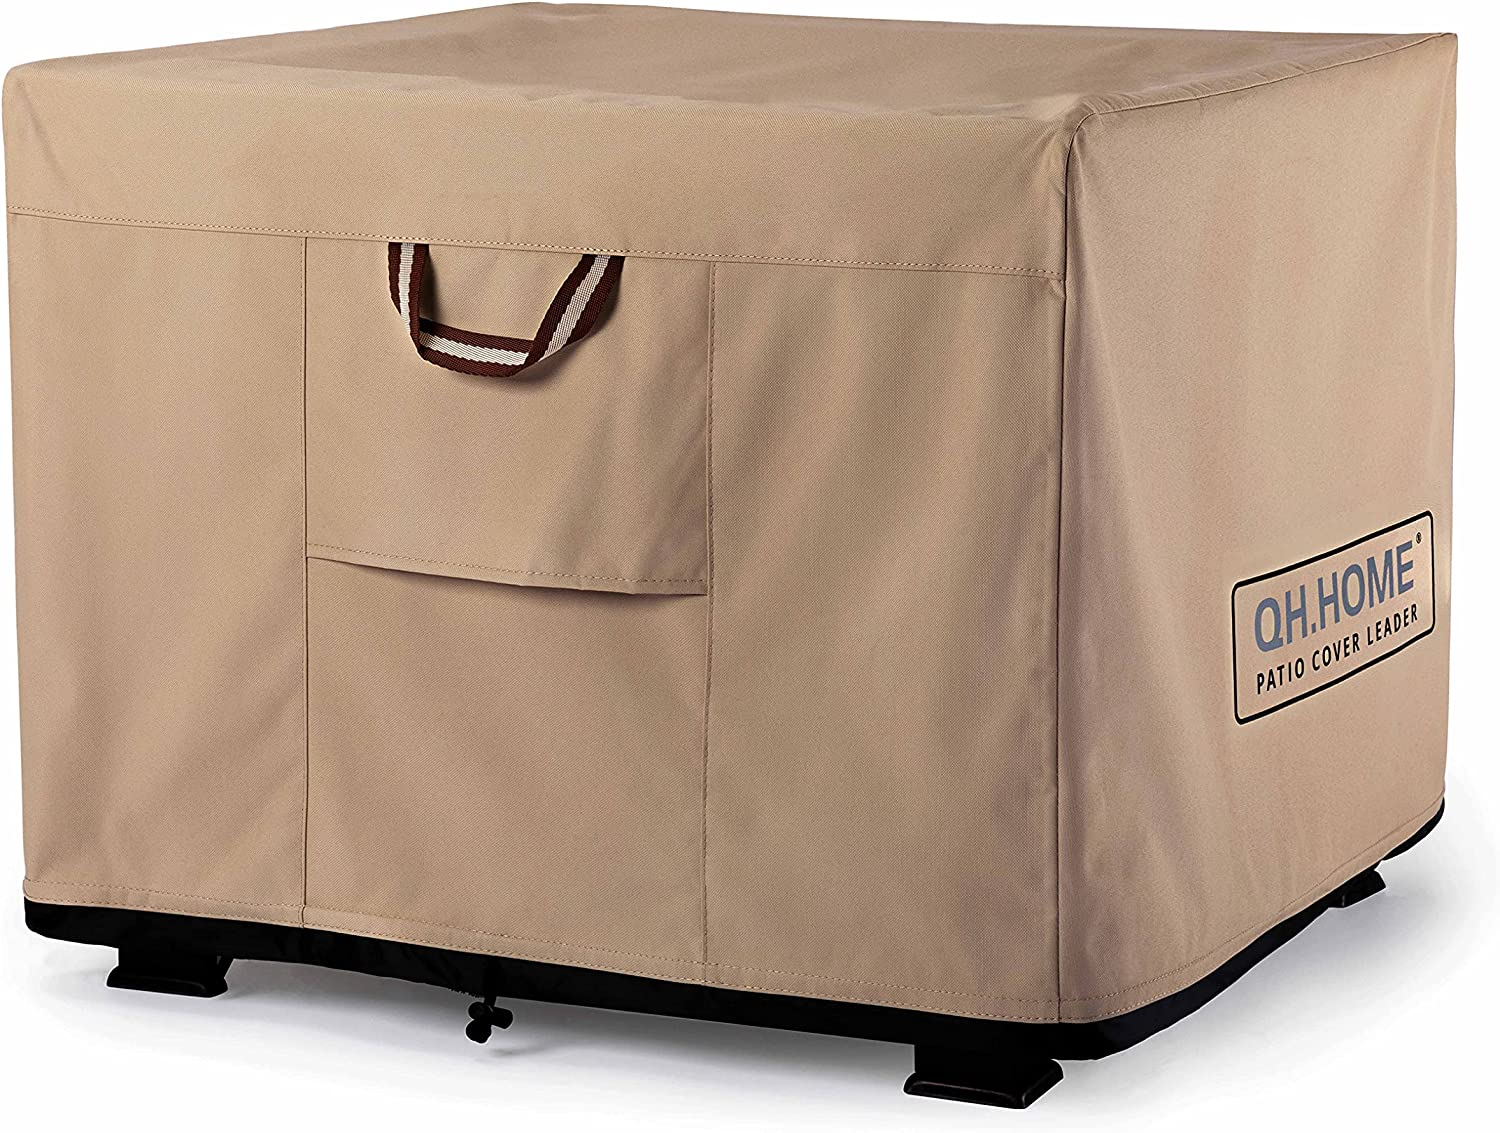 QH.HOME Fire Pit Cover - 28-32 Duty Strong High Tucson Mall quality new Tear- Inch Heavy 900D